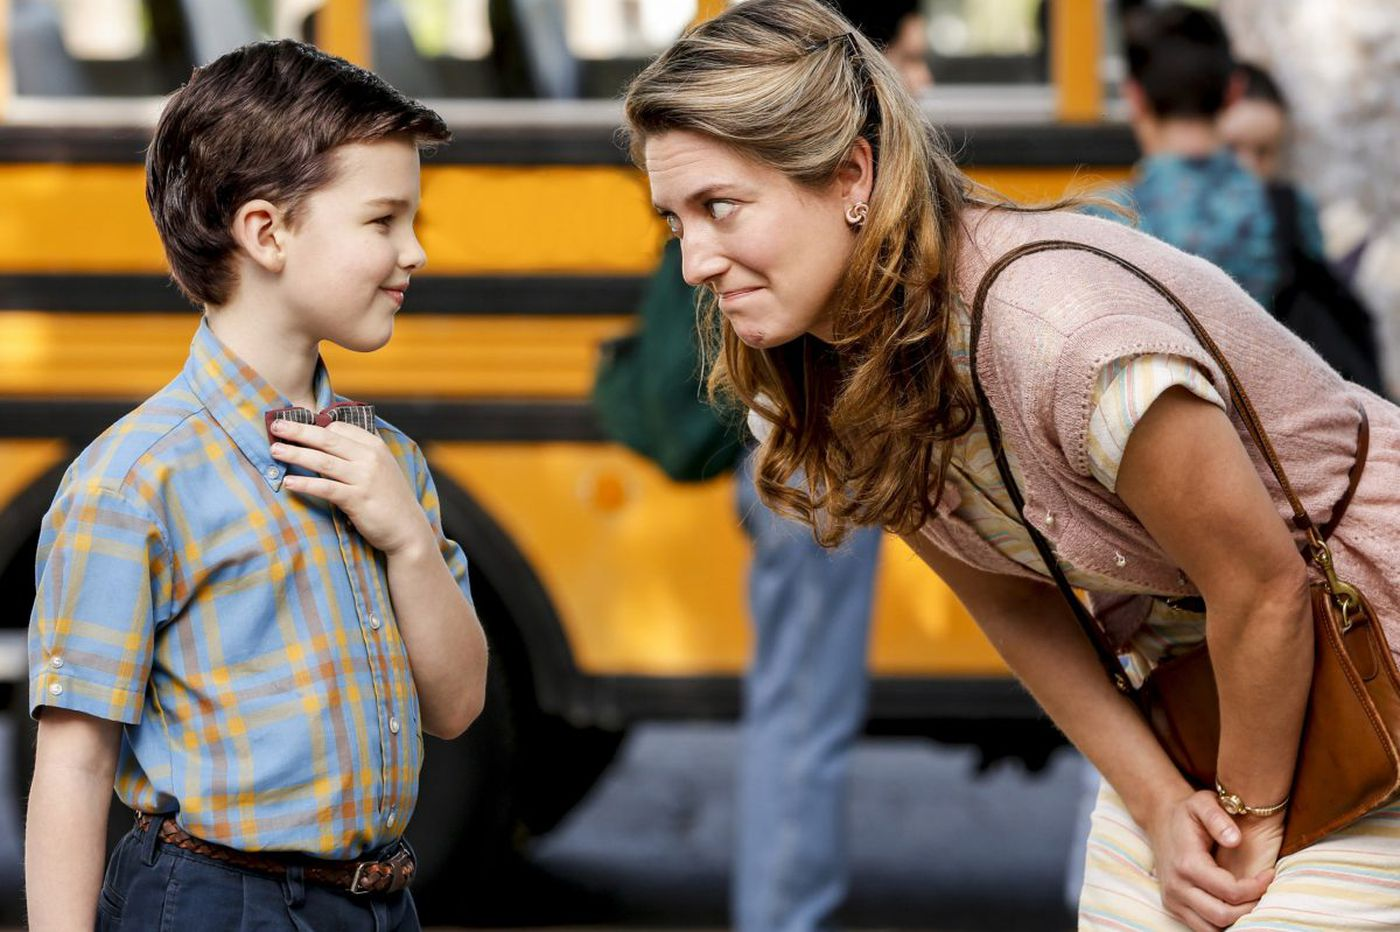 TV picks: 'Young Sheldon,' 'This Is Us,' 'Will & Grace' and more